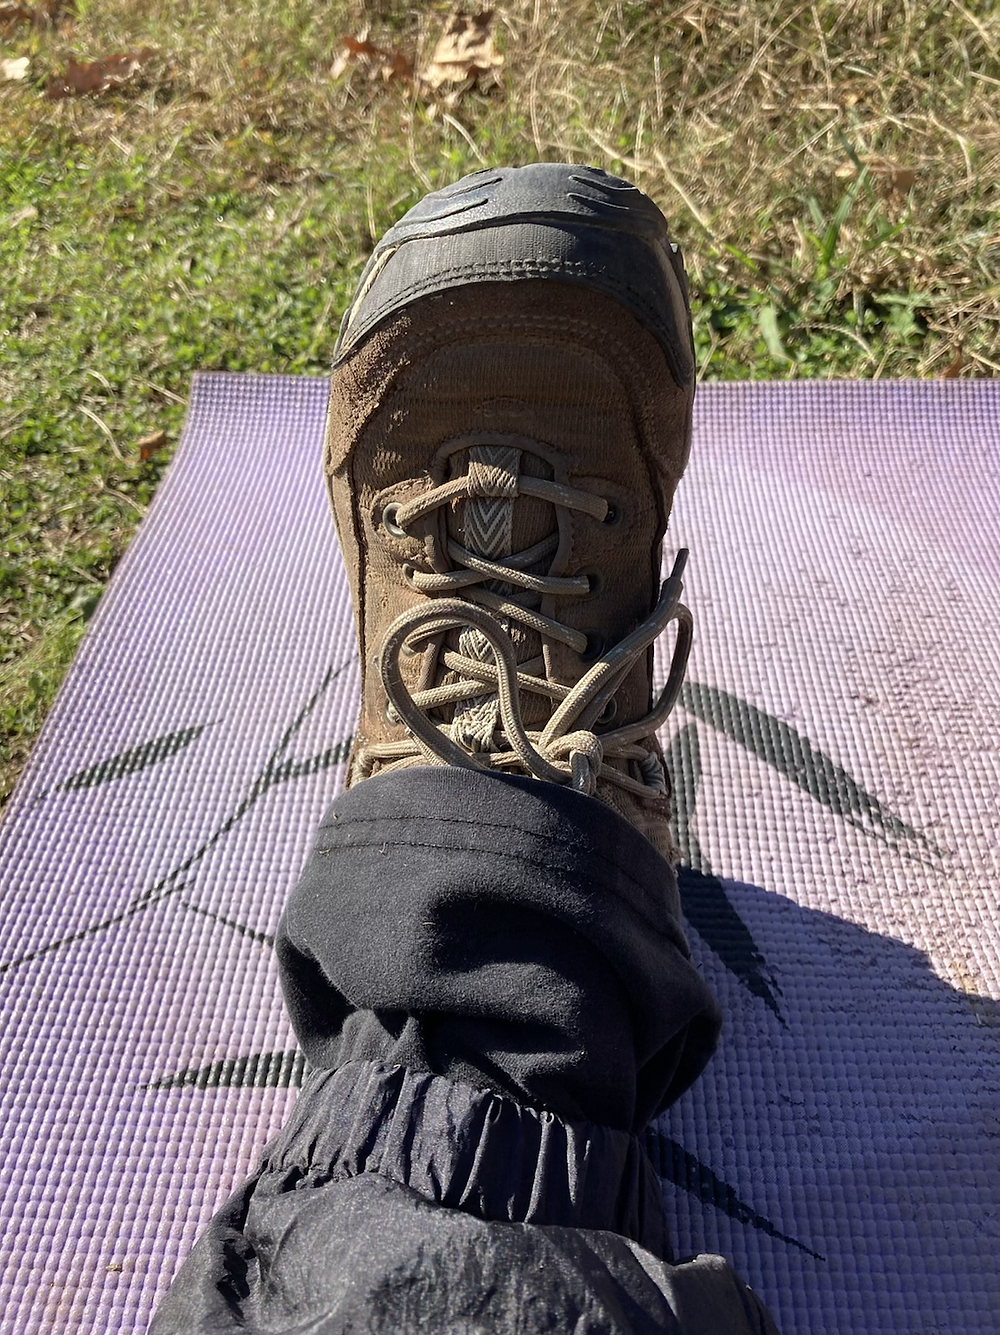 Outdoor Yoga - wearing weather proof pants is a great way to practice yoga outdoors in cold weather